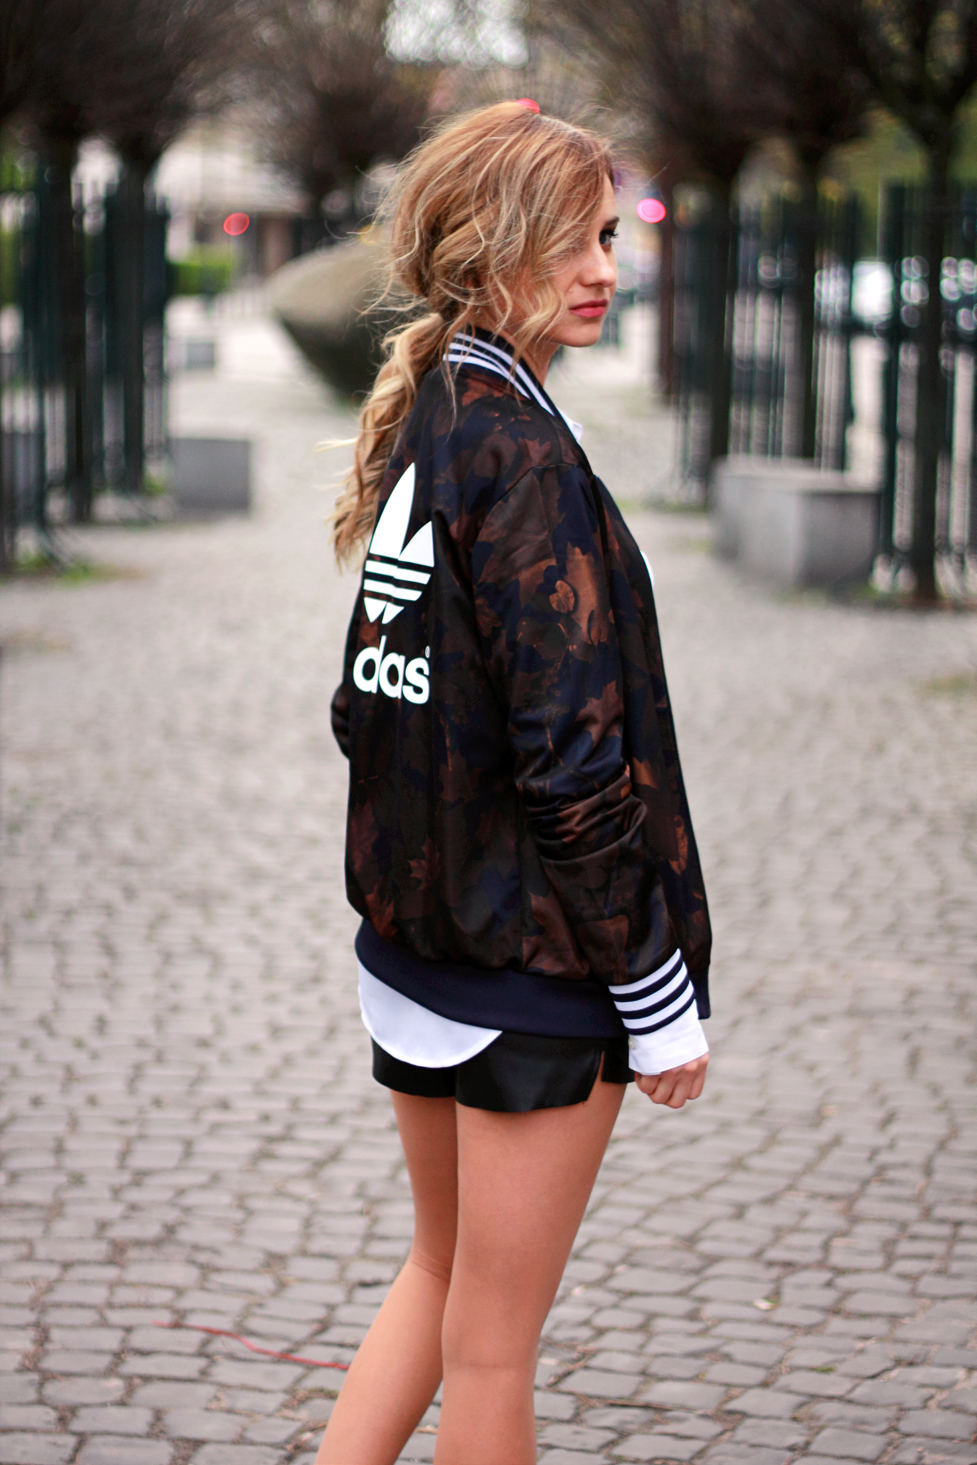 street style tumblr girl blonde beauty ootd look lookbook outfit adidas jacket moro fashion